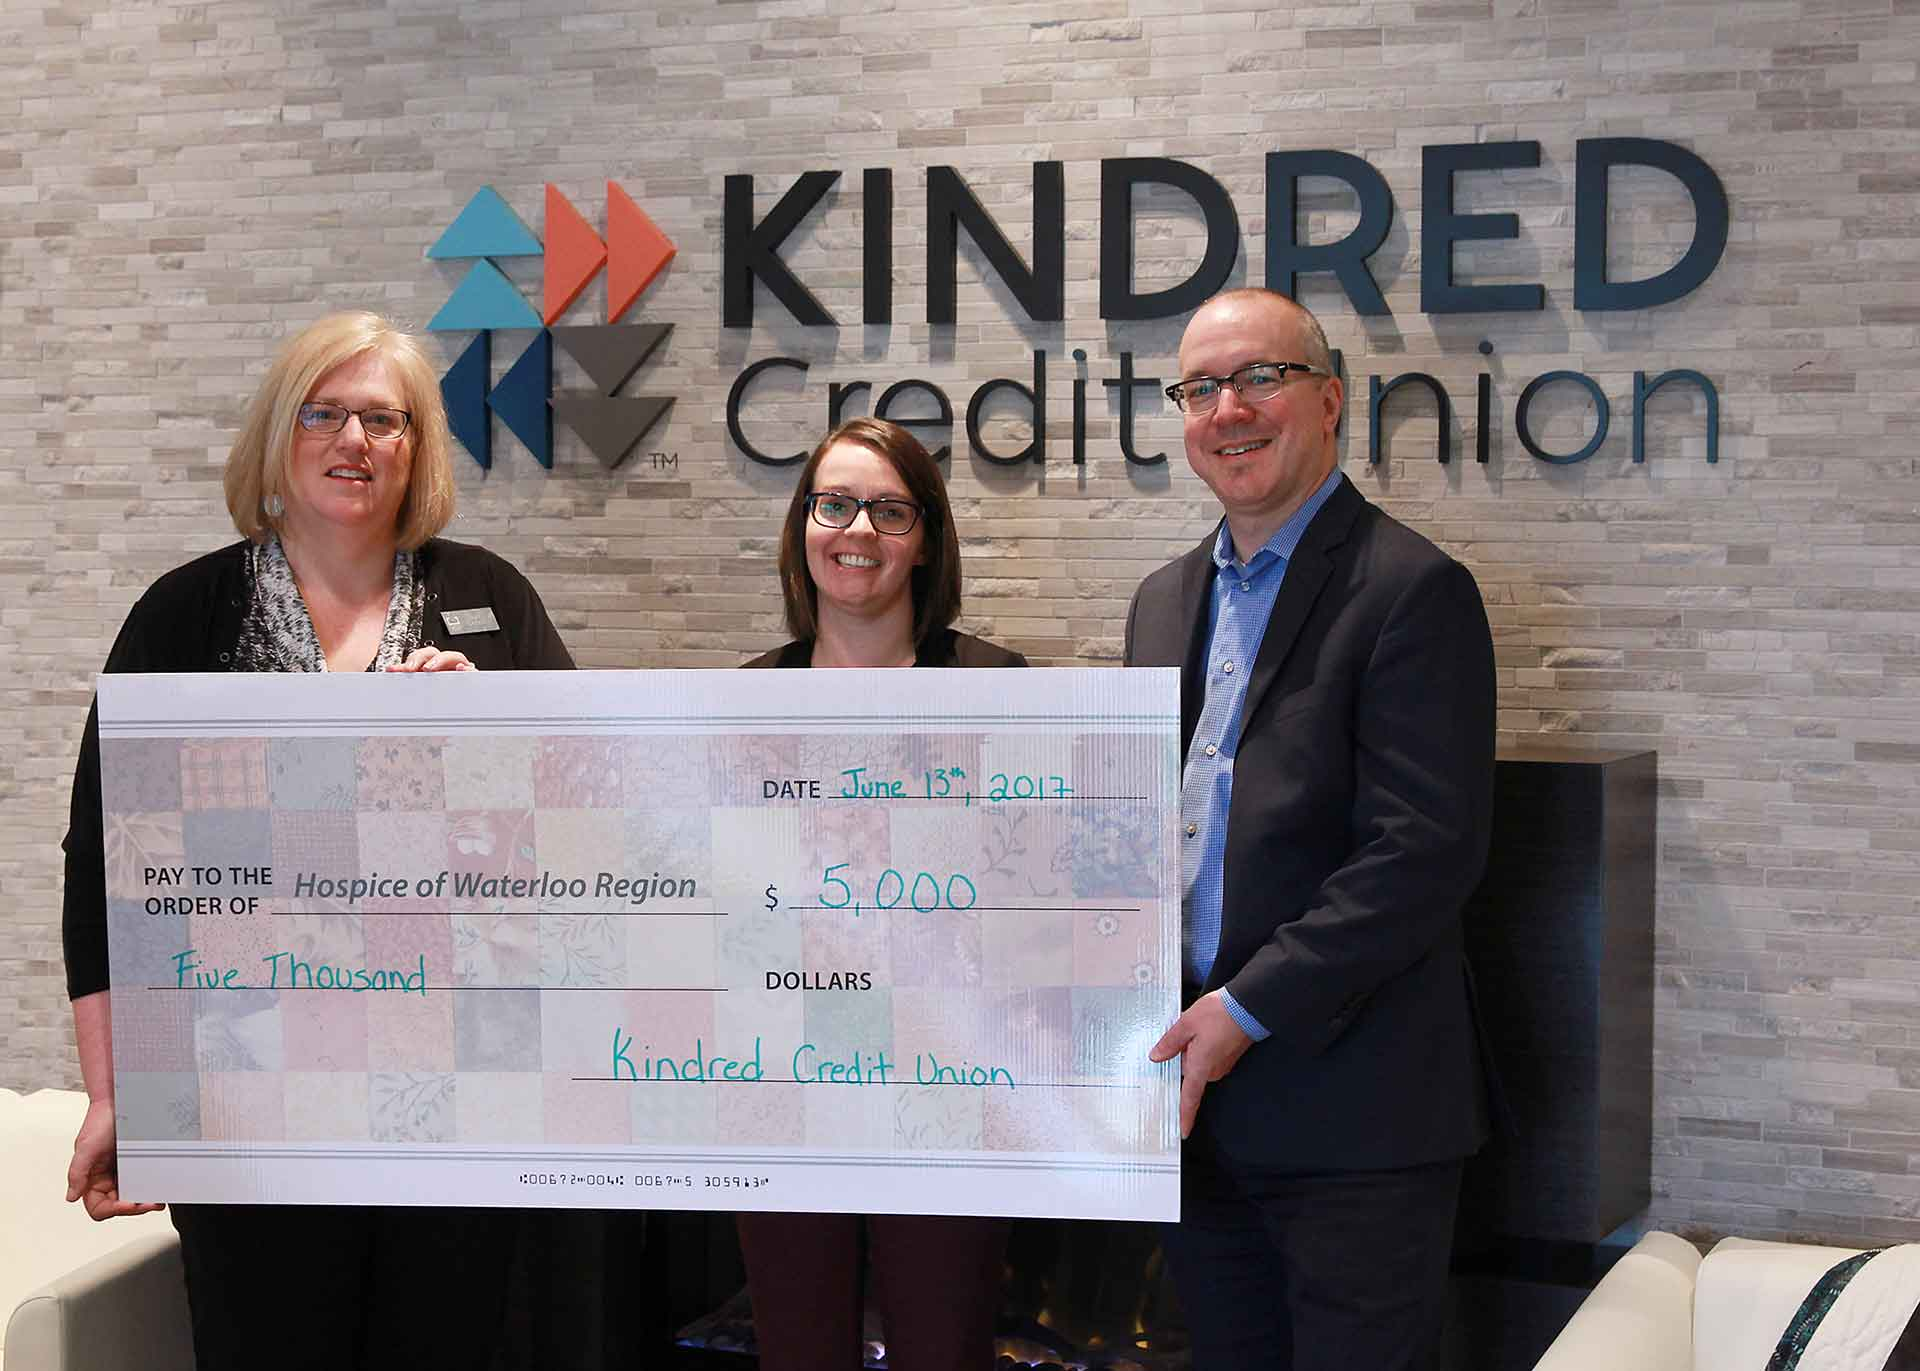 Kindred Credit Union joins Hike for Hospice Waterloo Region!